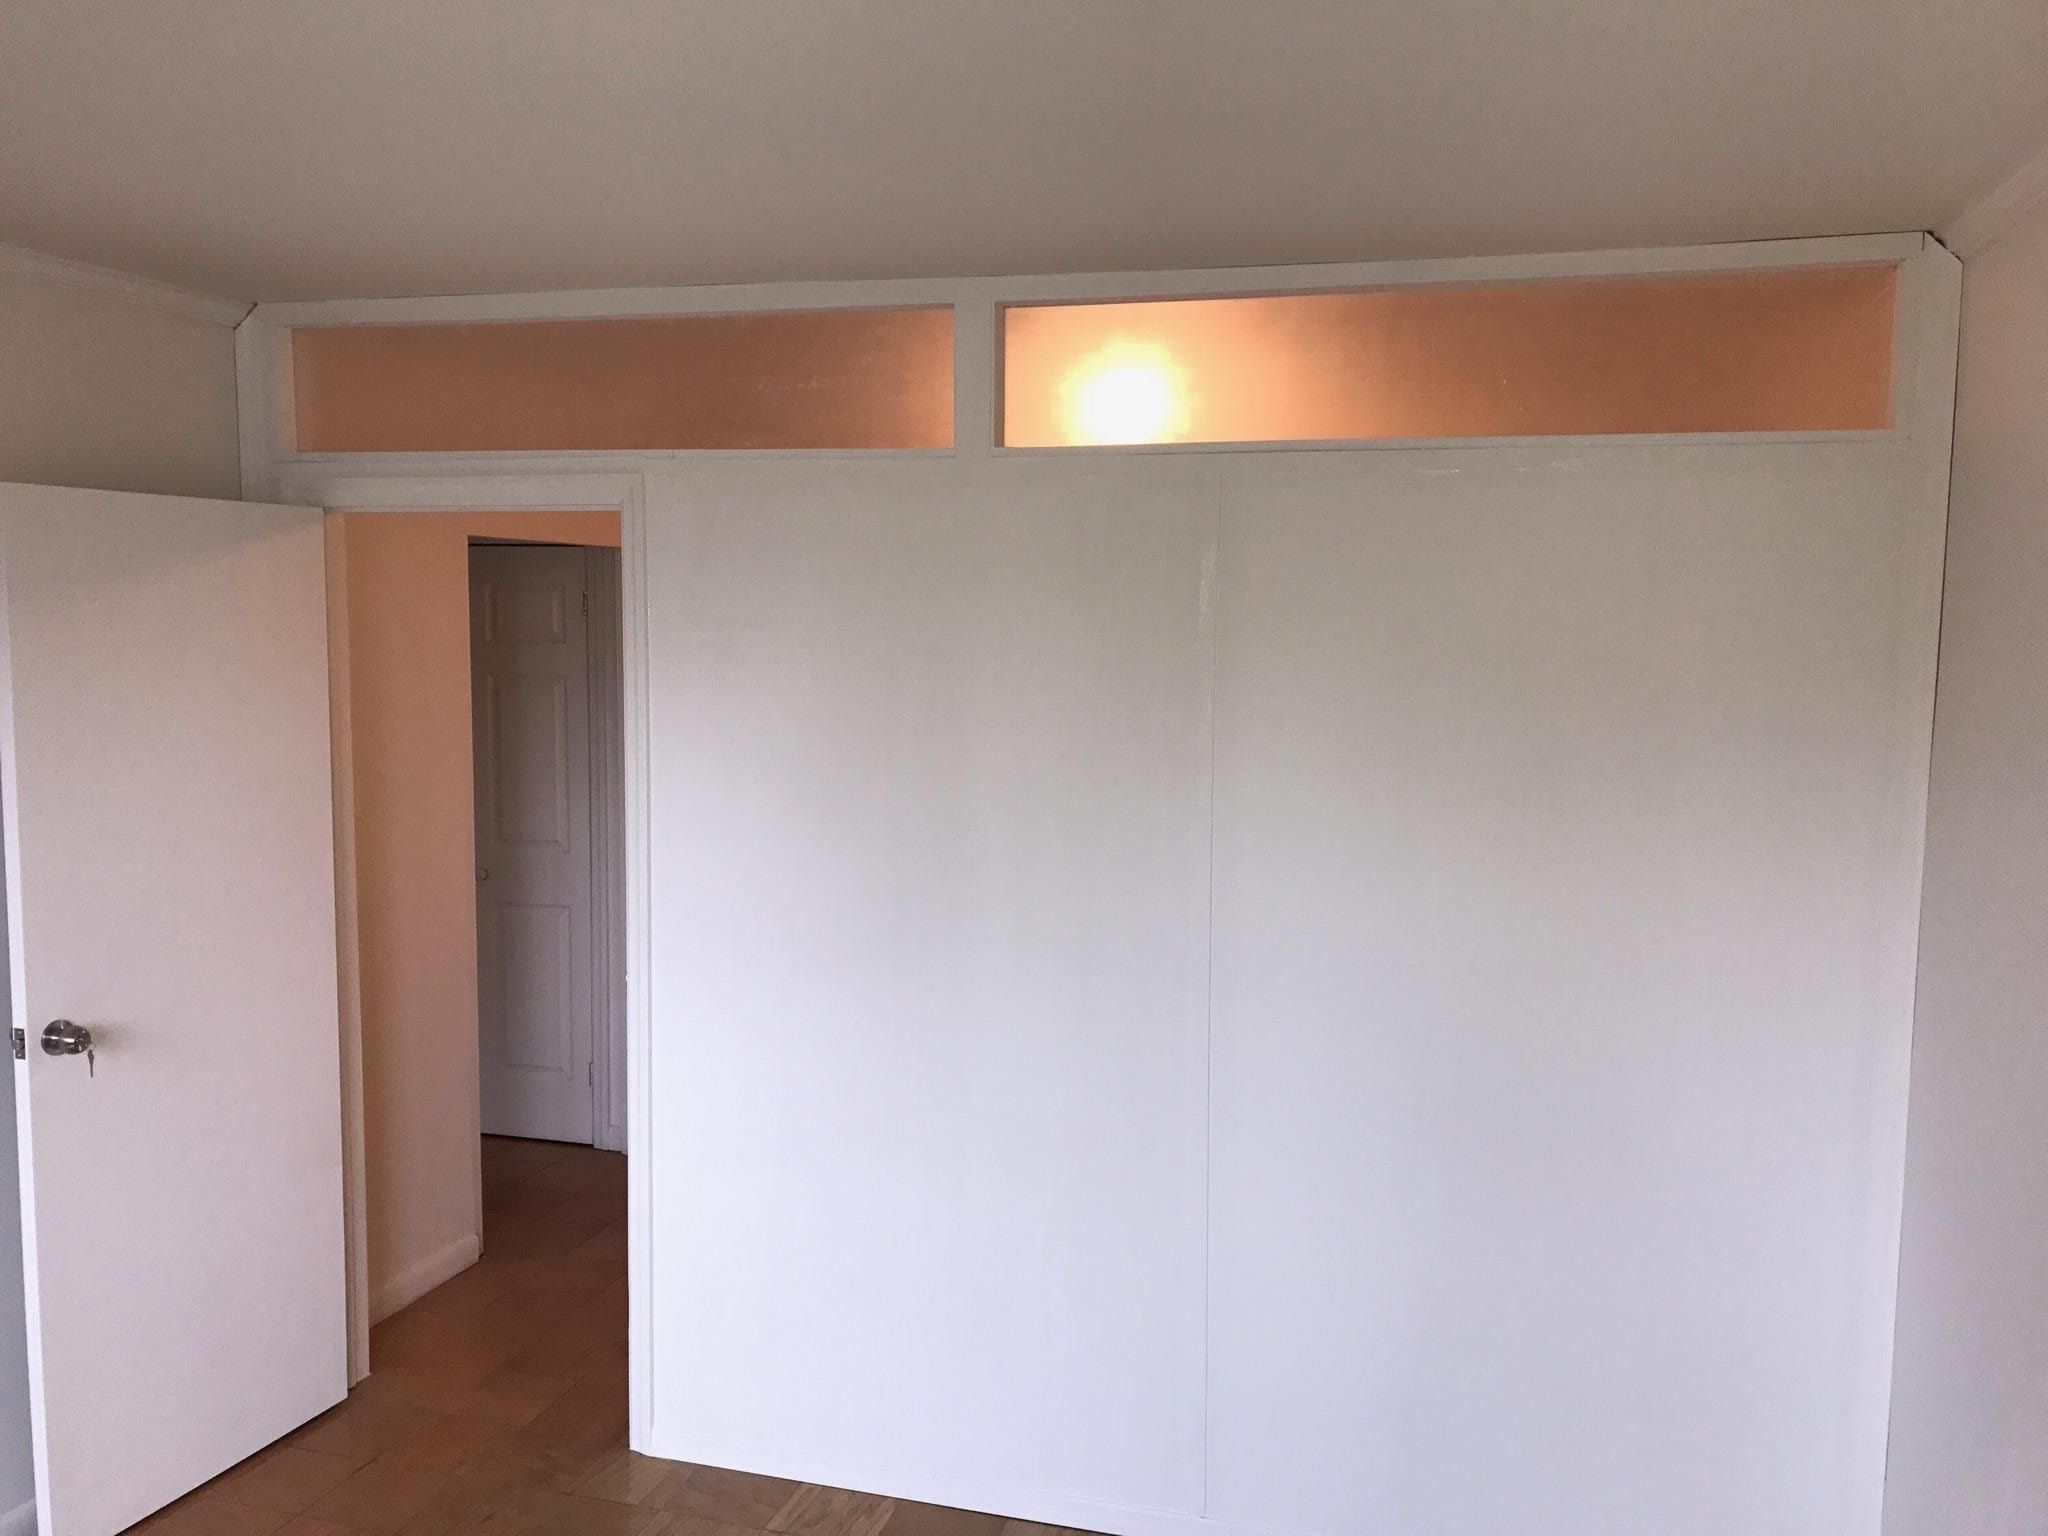 Recent installation  Temporary partition with plexiglass transom  Call us  for all your custom room partition inquiries  Temporary Wall  Recent installation  Temporary partition with plexiglass transom  . Temporary Wall Partition Bedroom. Home Design Ideas